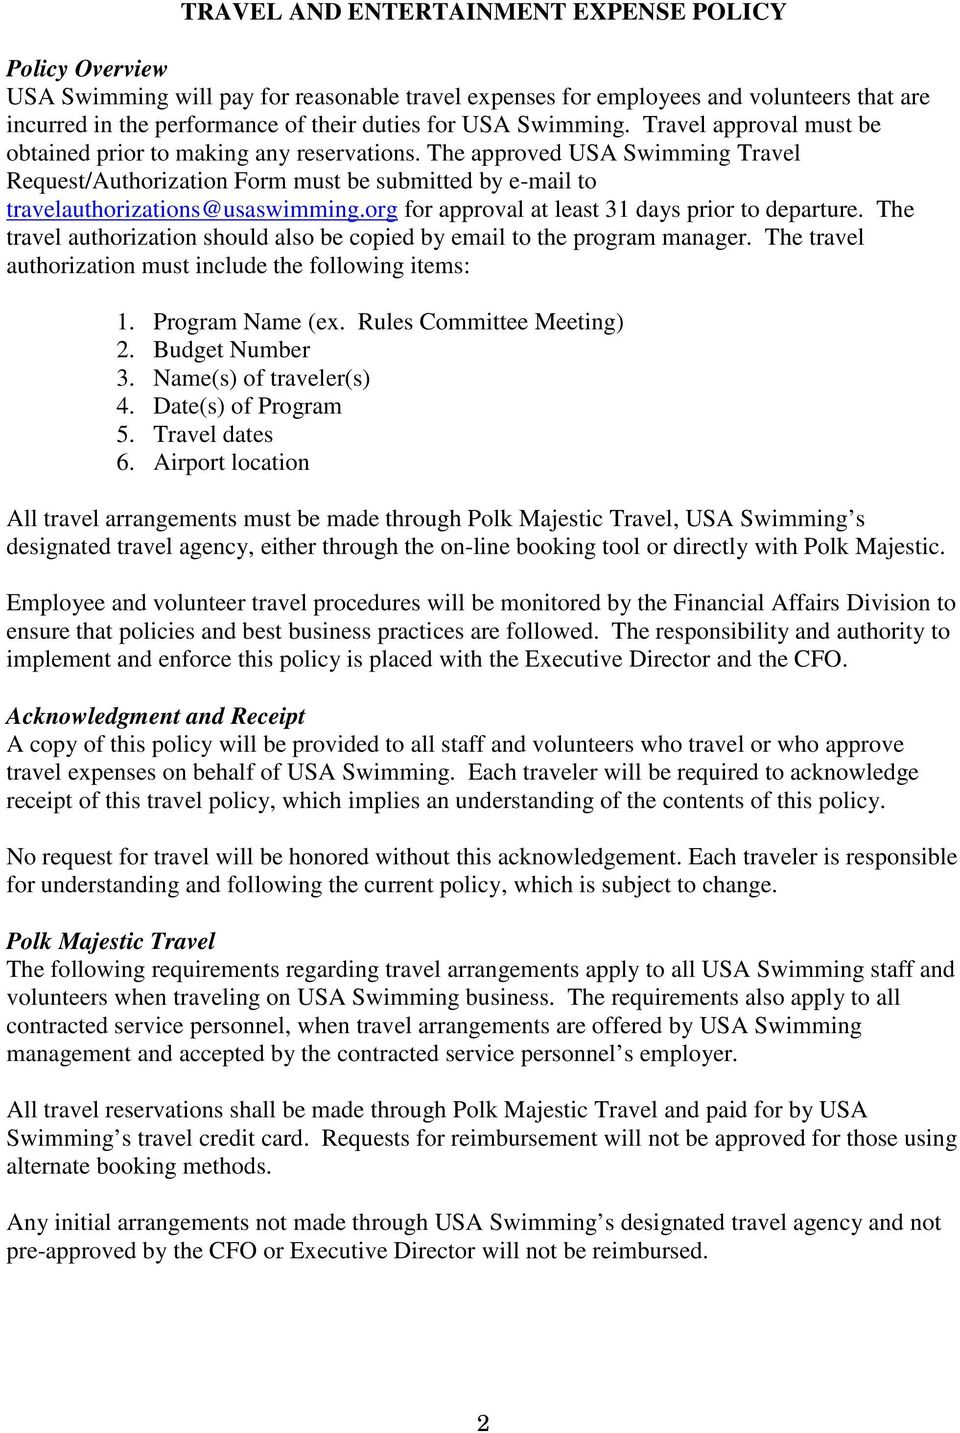 USA SWIMMING TRAVEL POLICY SUMMARY - PDF